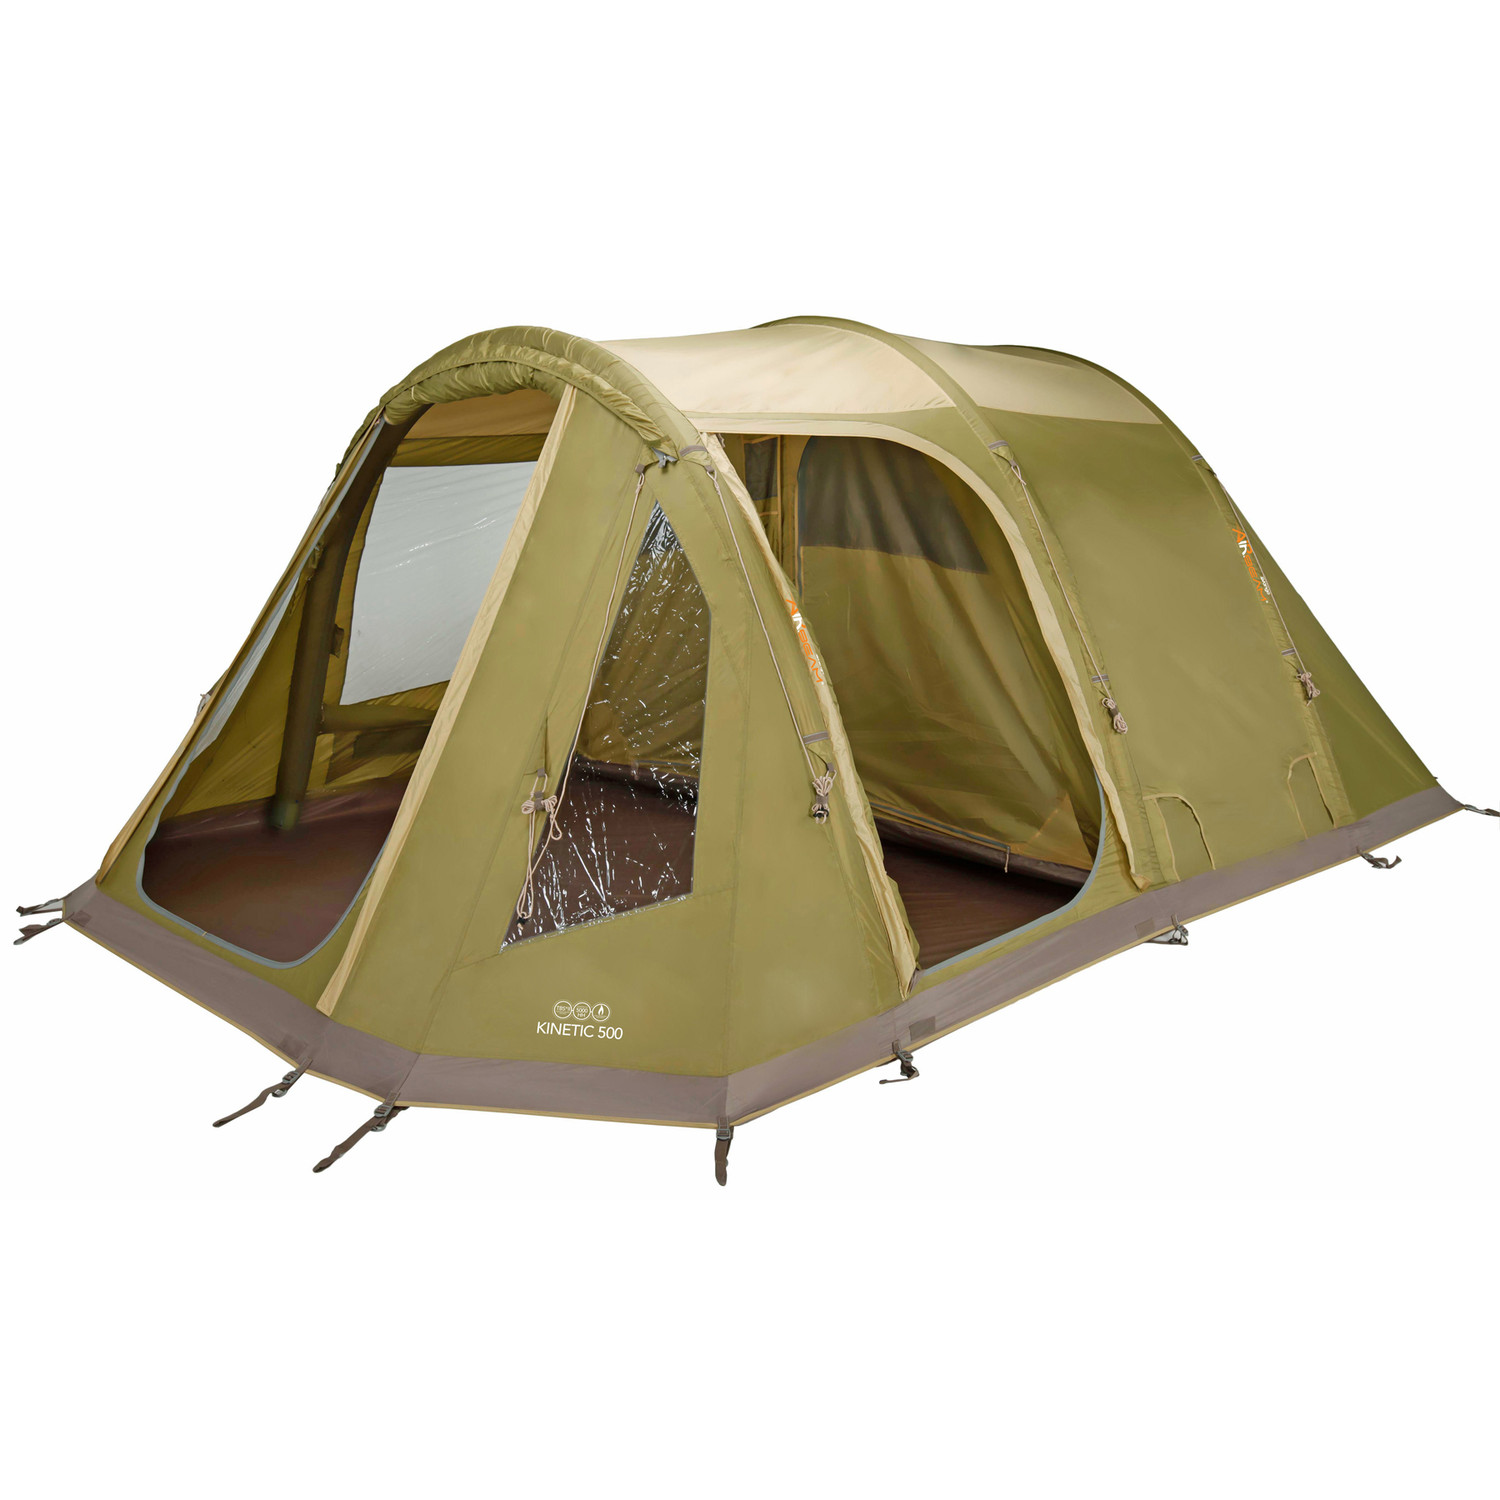 Vango Kinetic Airbeam 500 Tent